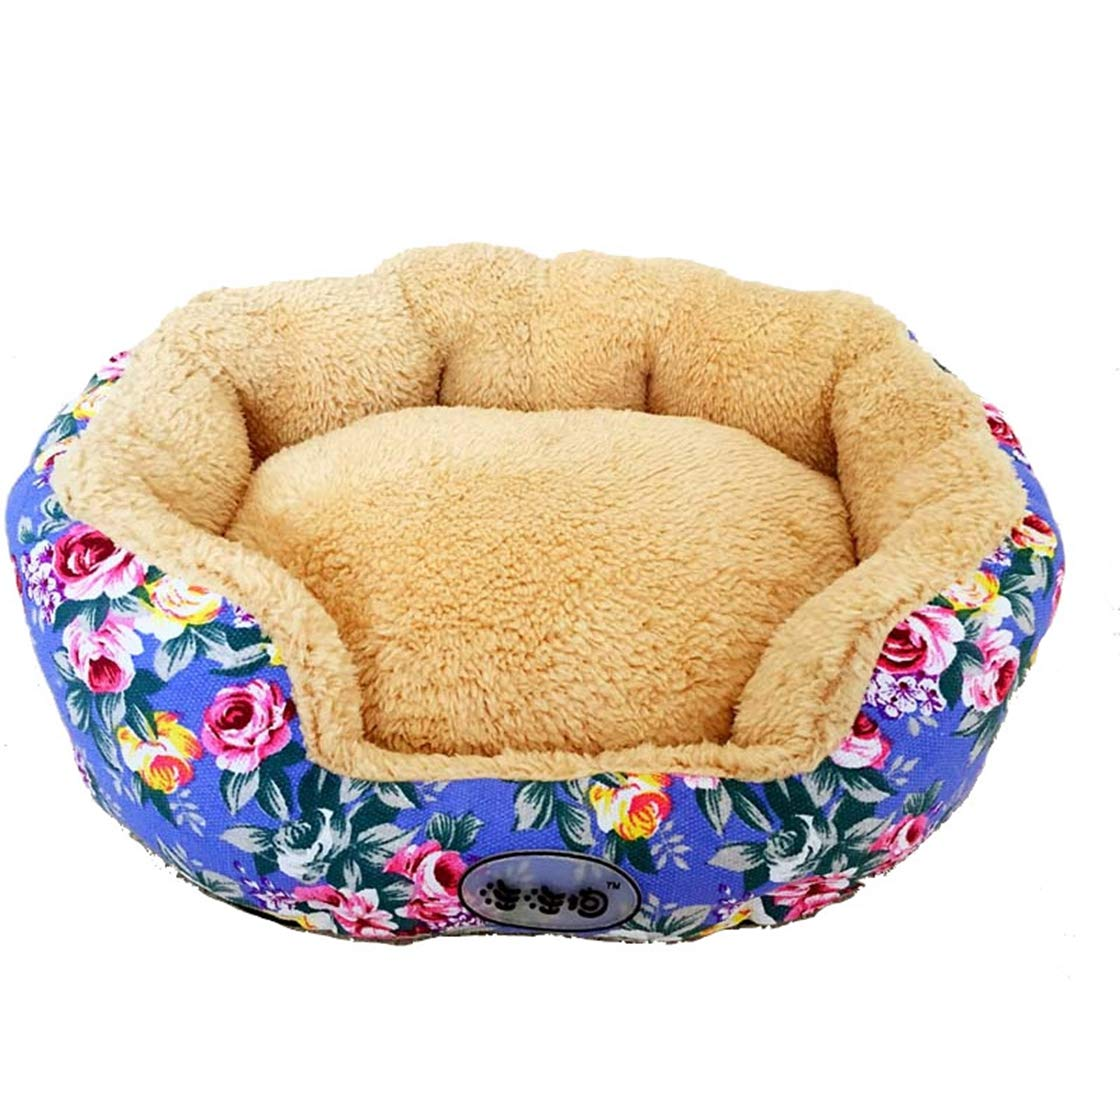 9 L 48x38cm 9 L 48x38cm Comfortable Warm Bed Dog Puppy Soft Beds Mats Small Pets Pet Products Supplies